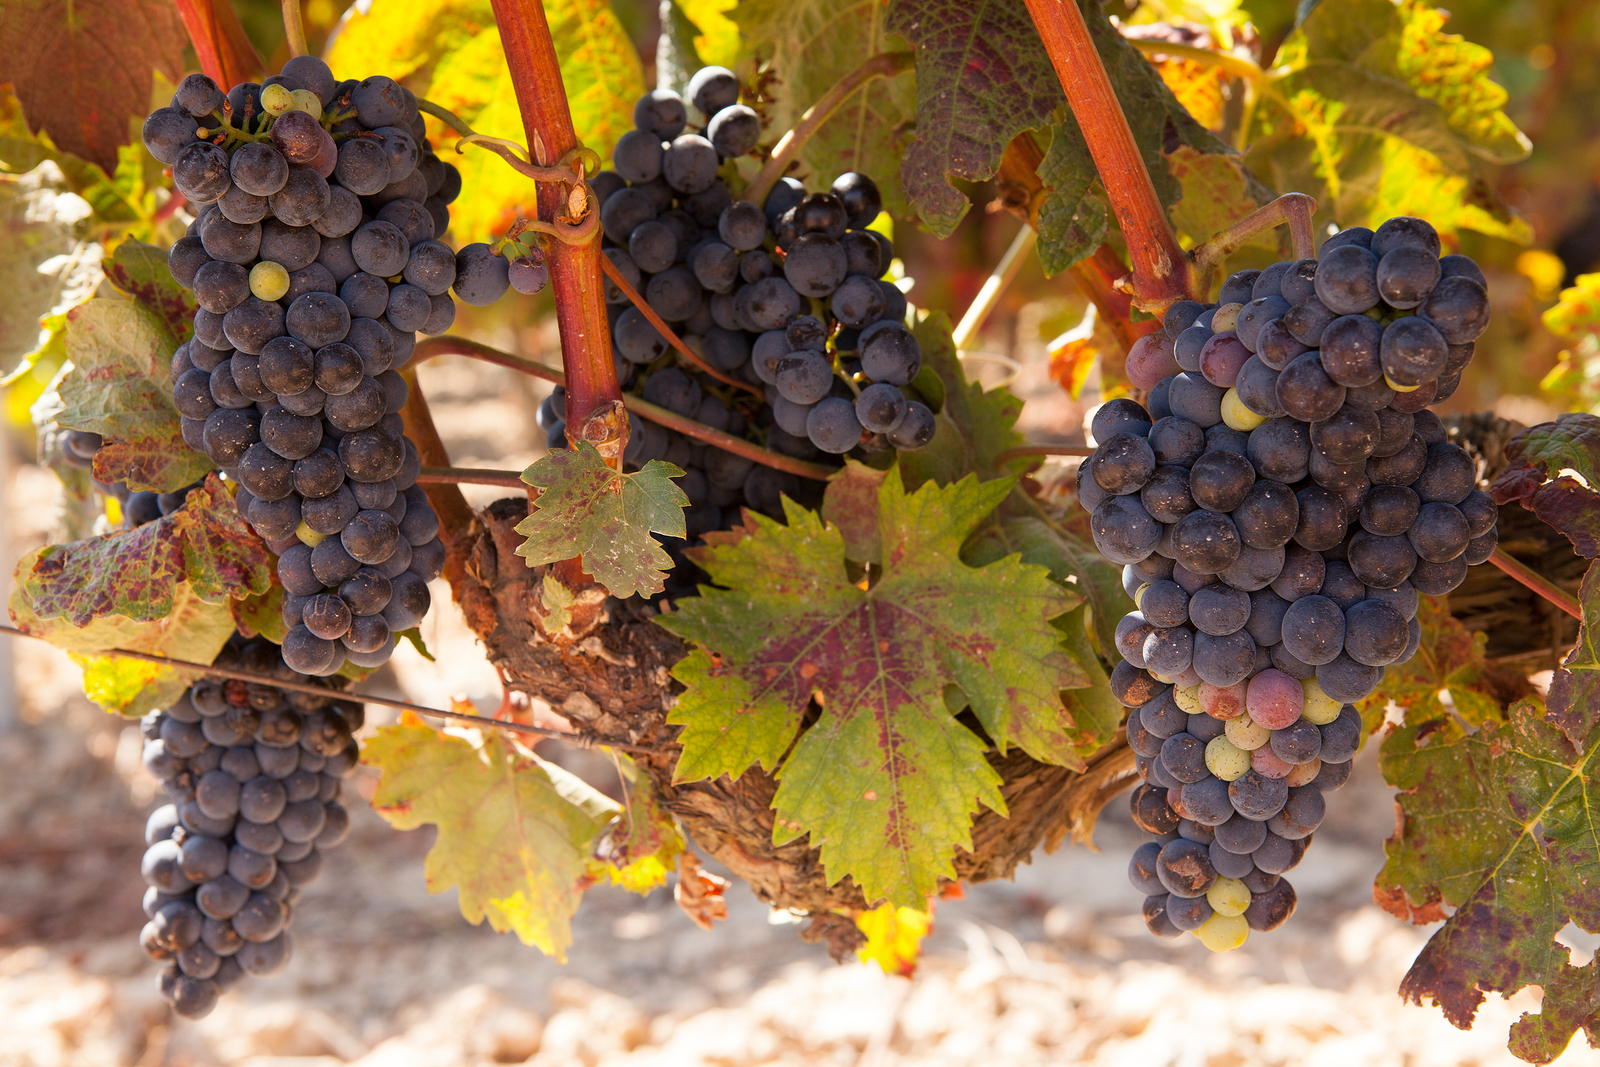 Bunches of tempranillo grapes in the Rioja region of Northern Spain, approaching harvest time.